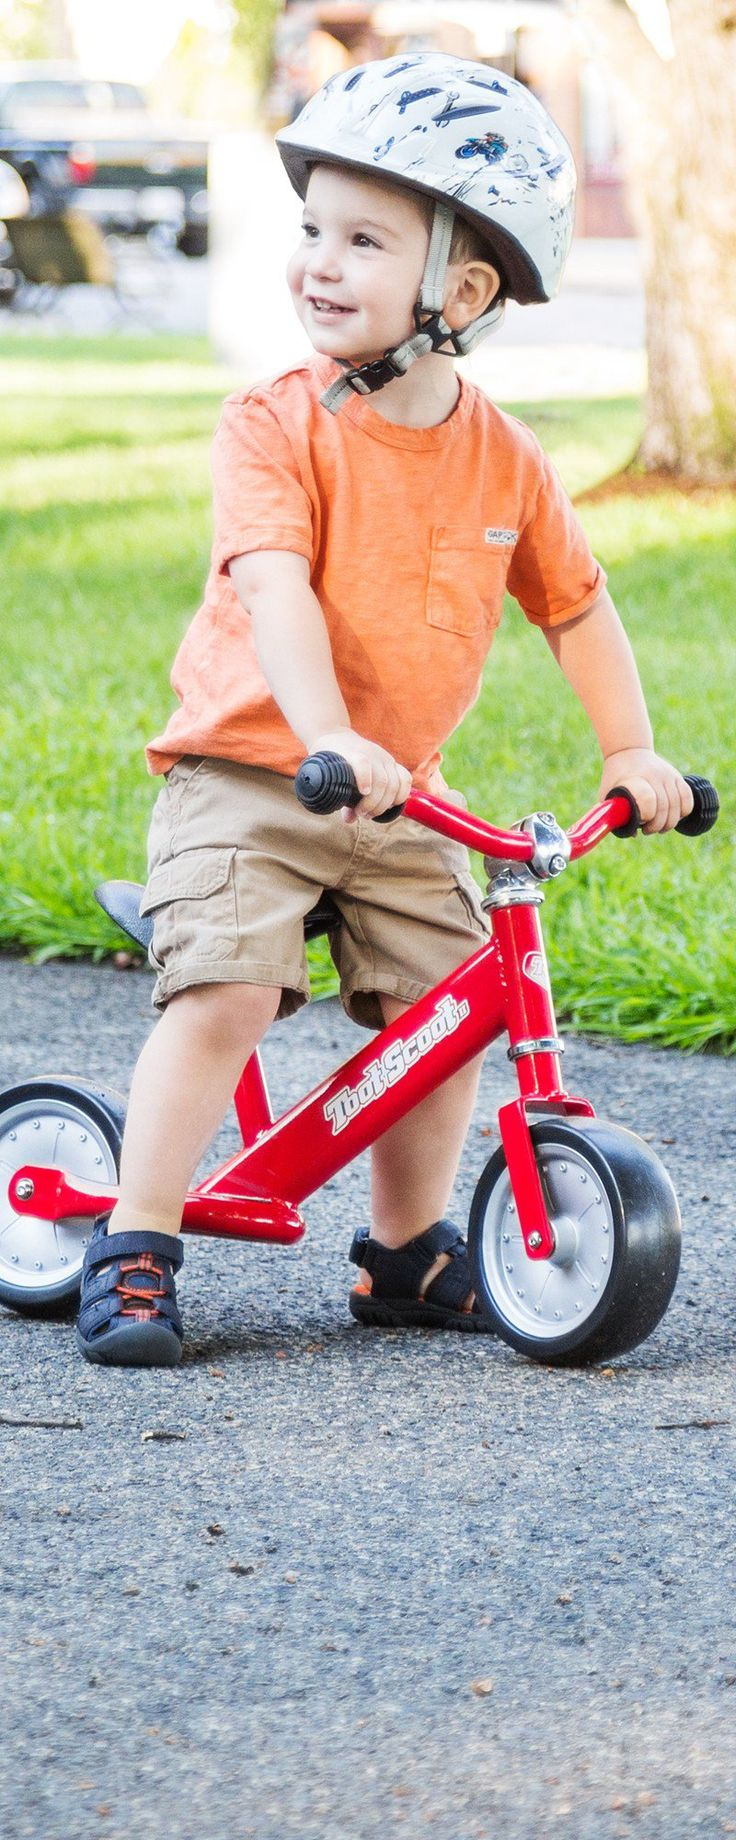 Kids can ride this balance bike as soon as they learn to walk—building their motor skills a scoot at a time.